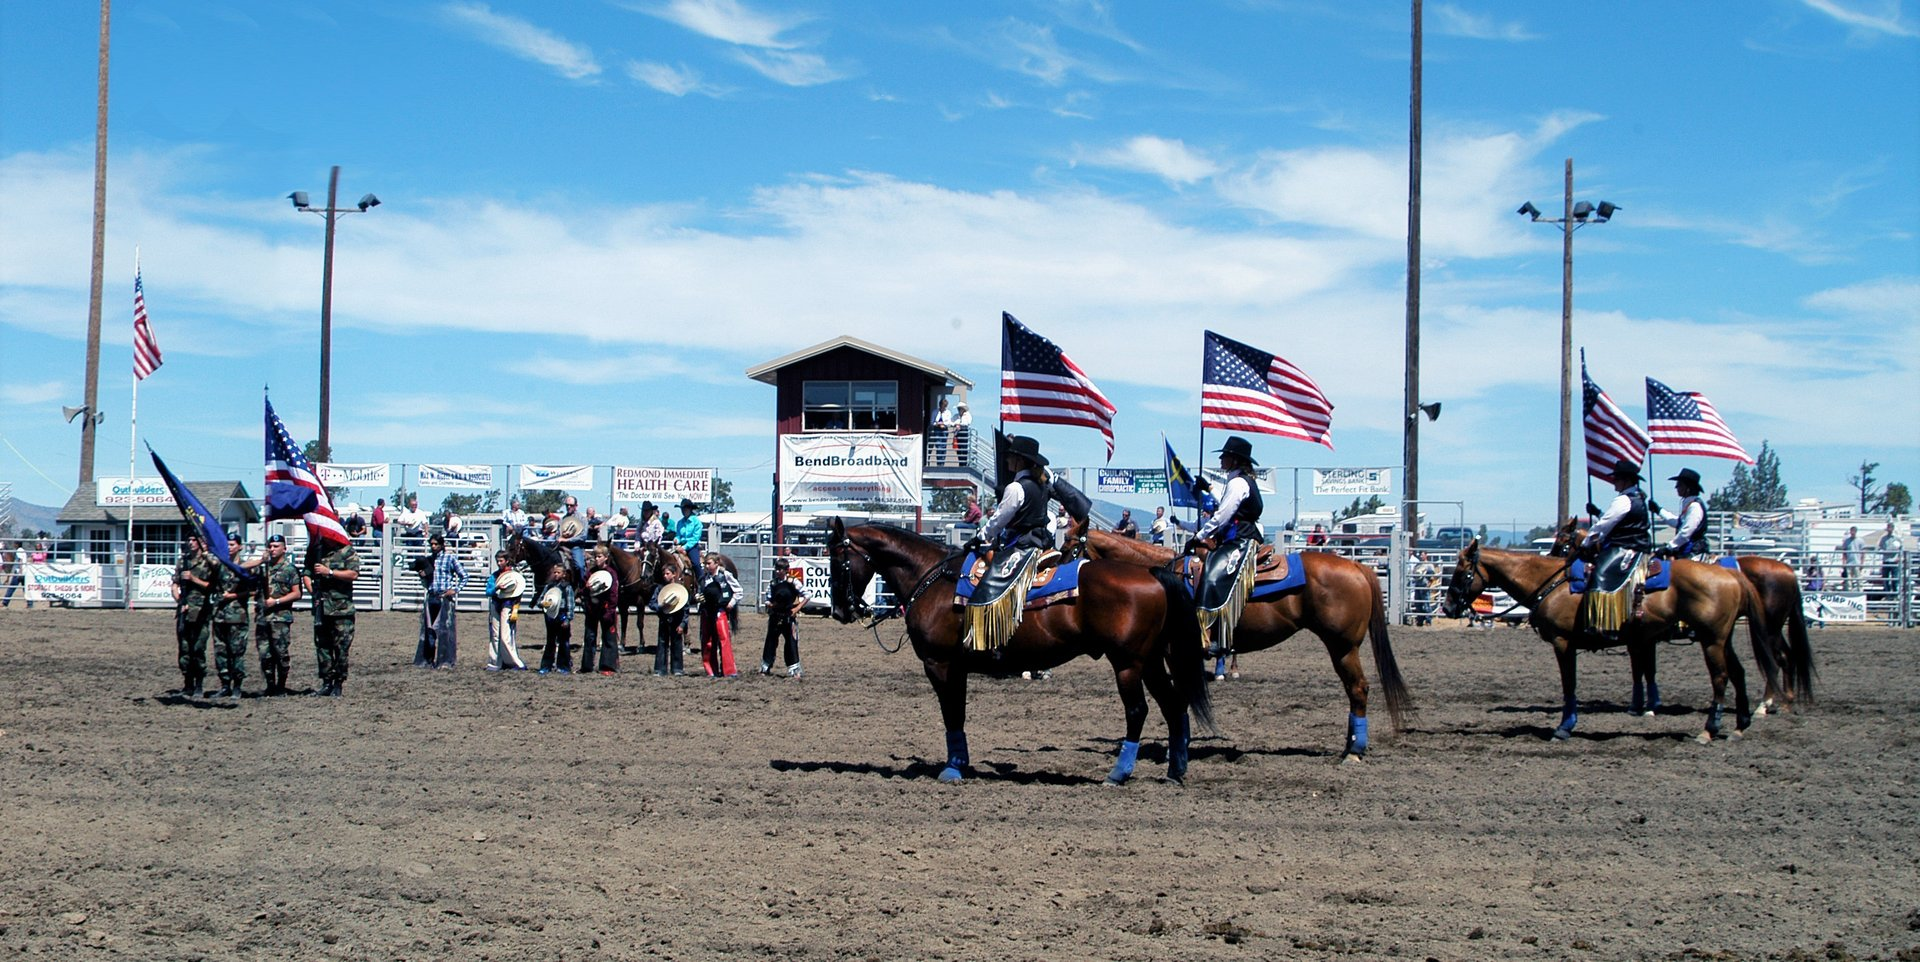 Deschutes County Fair & Rodeo in Oregon - Best Season 2020